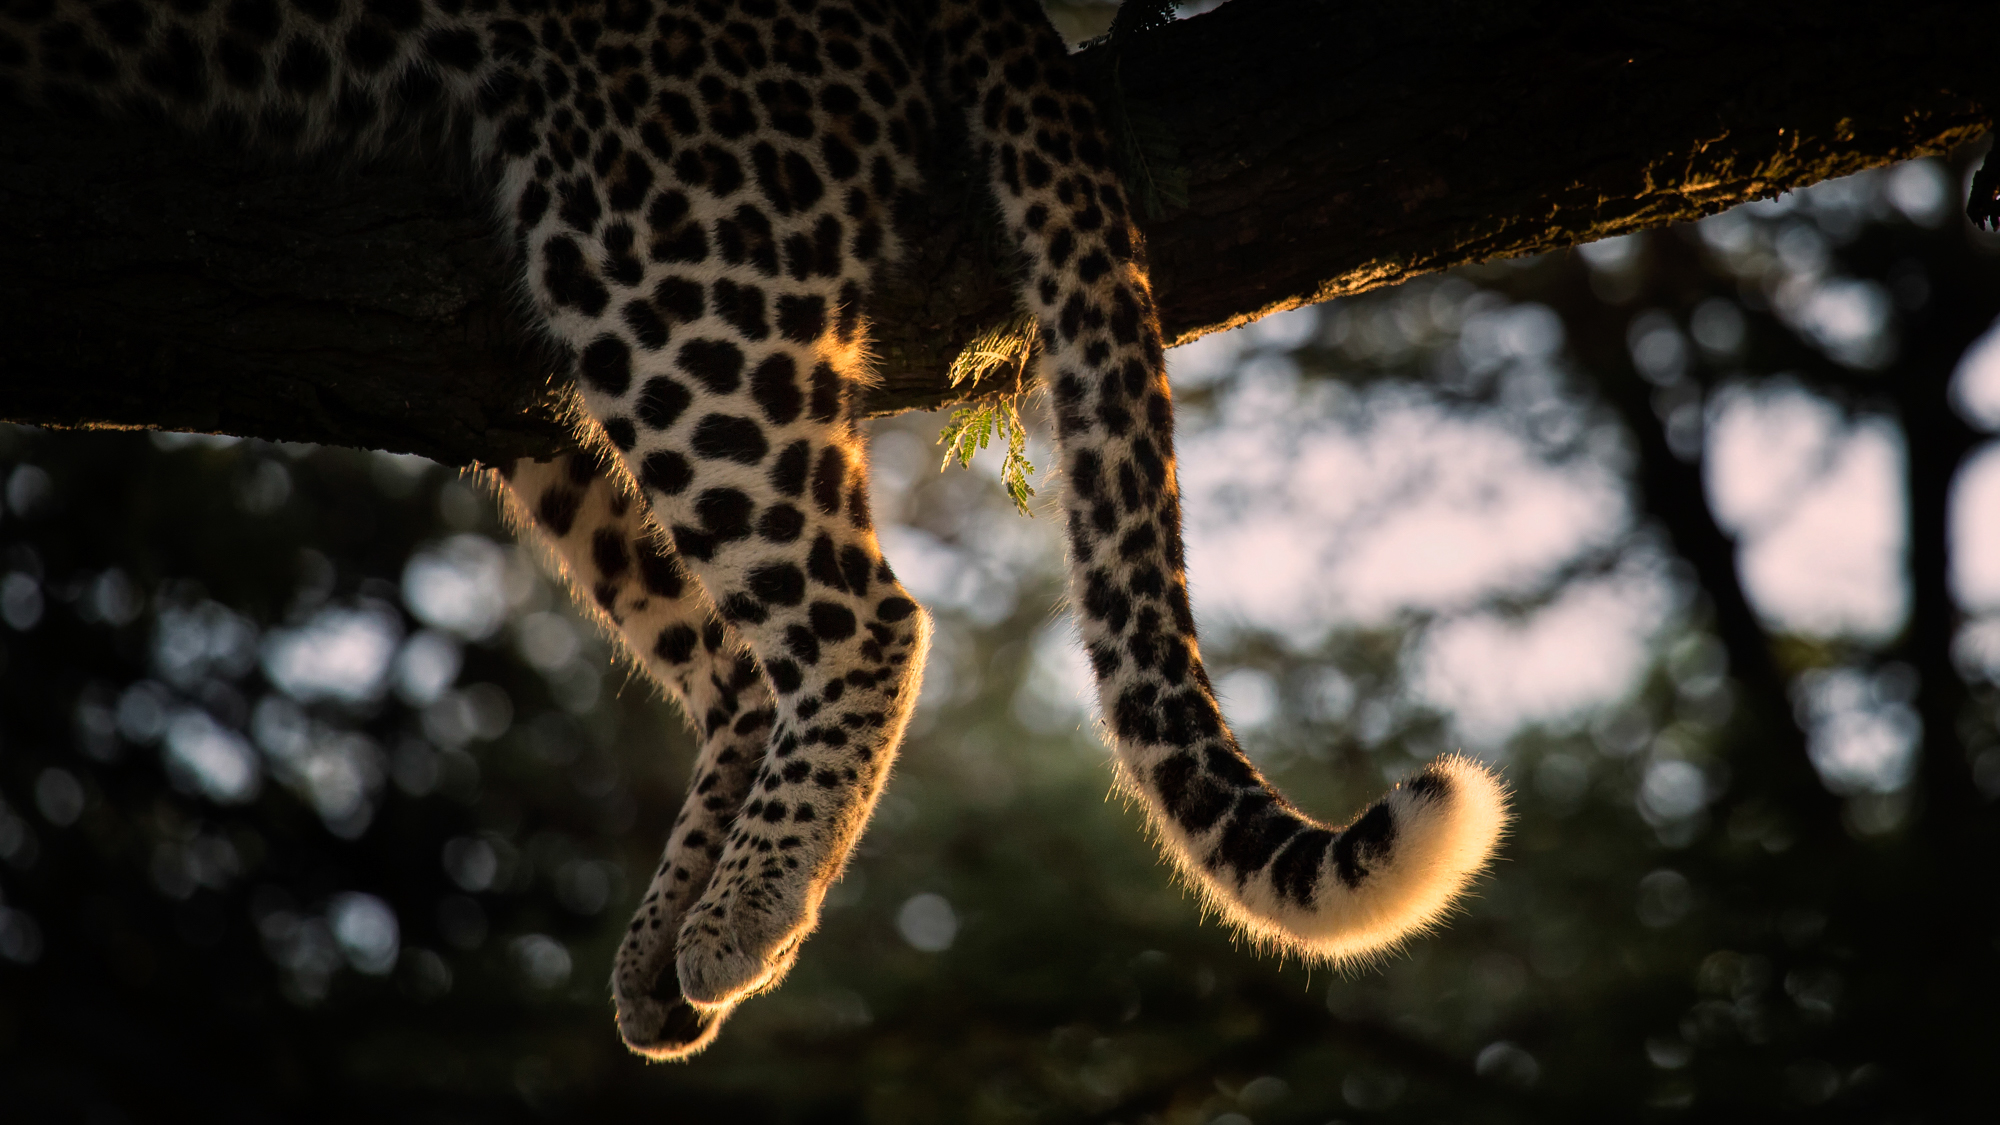 Morning light catches the detail of a resting leopard in the tree